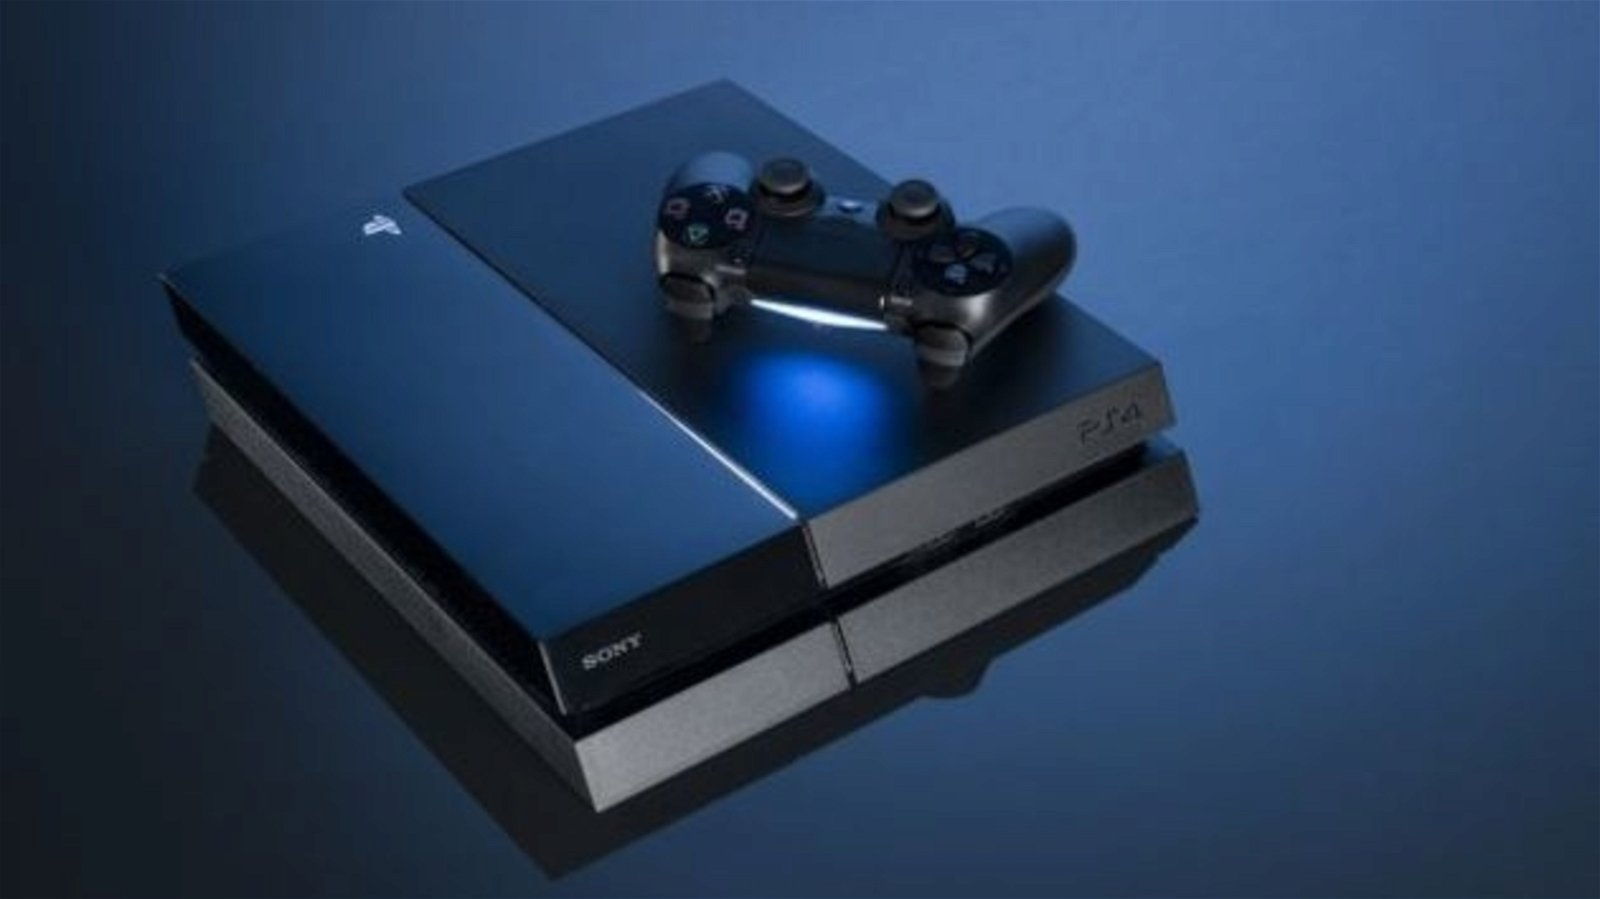 Sony to Discuss PS4 Slim and Neo in September. PSP Rumored. 2